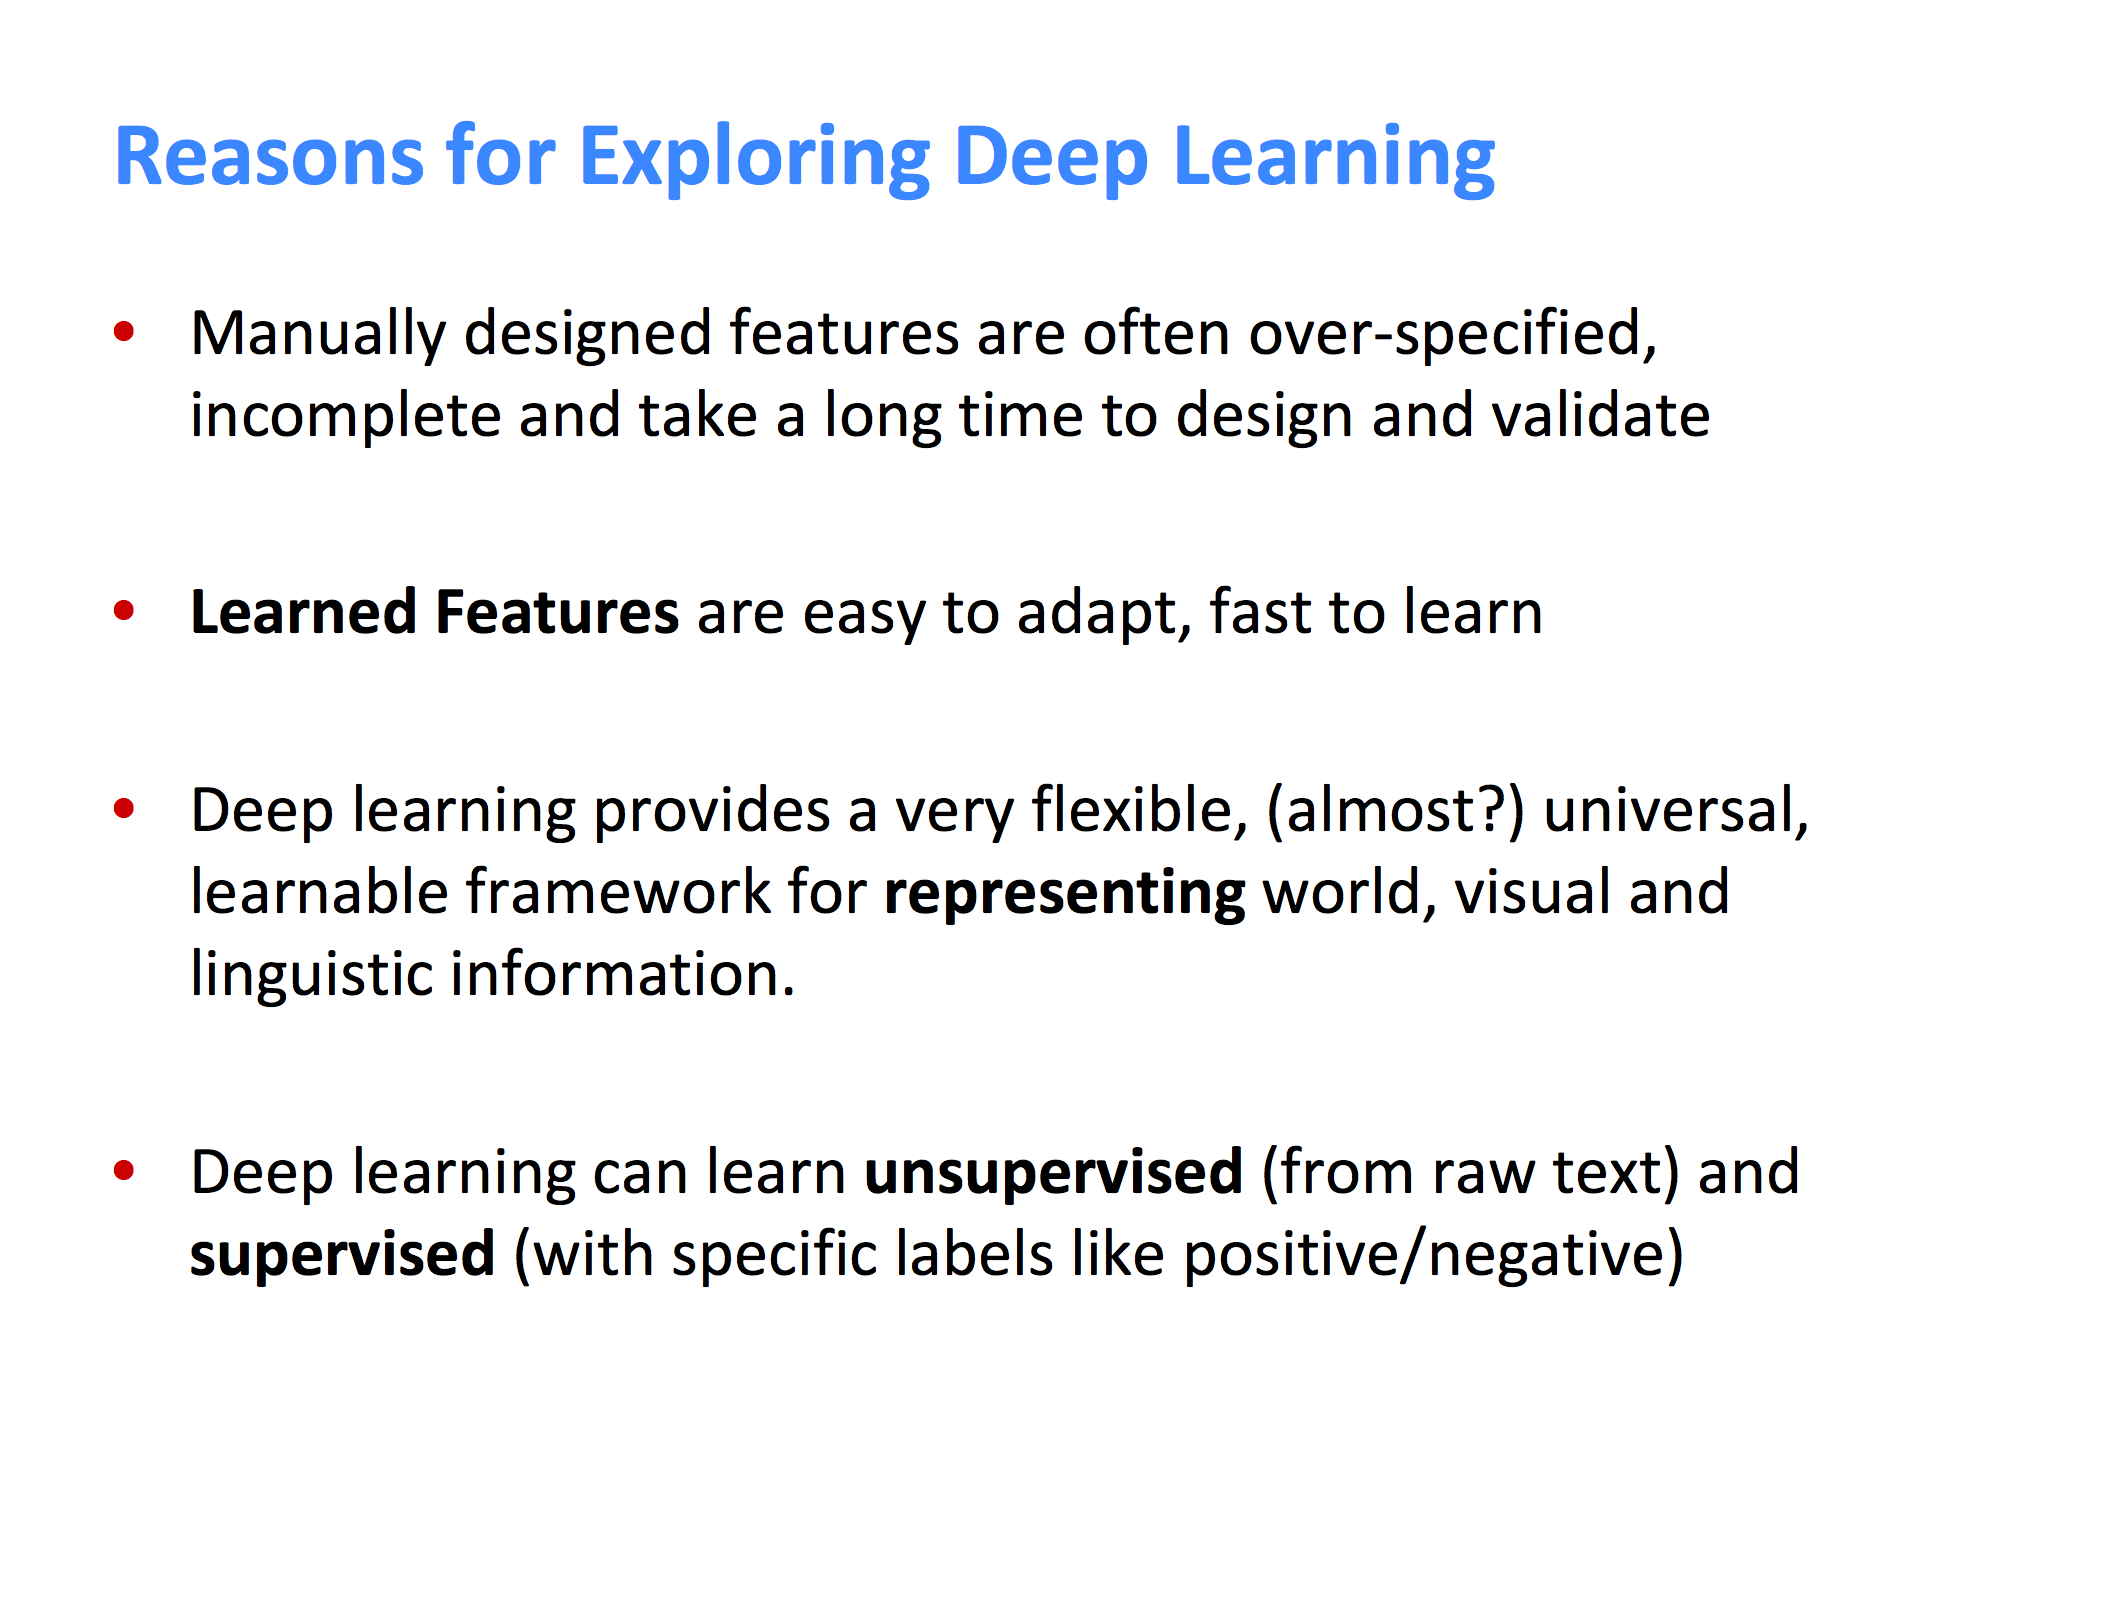 Reasons for Exploring Deep Learning, from the Stanford Deep Learning for NLP course